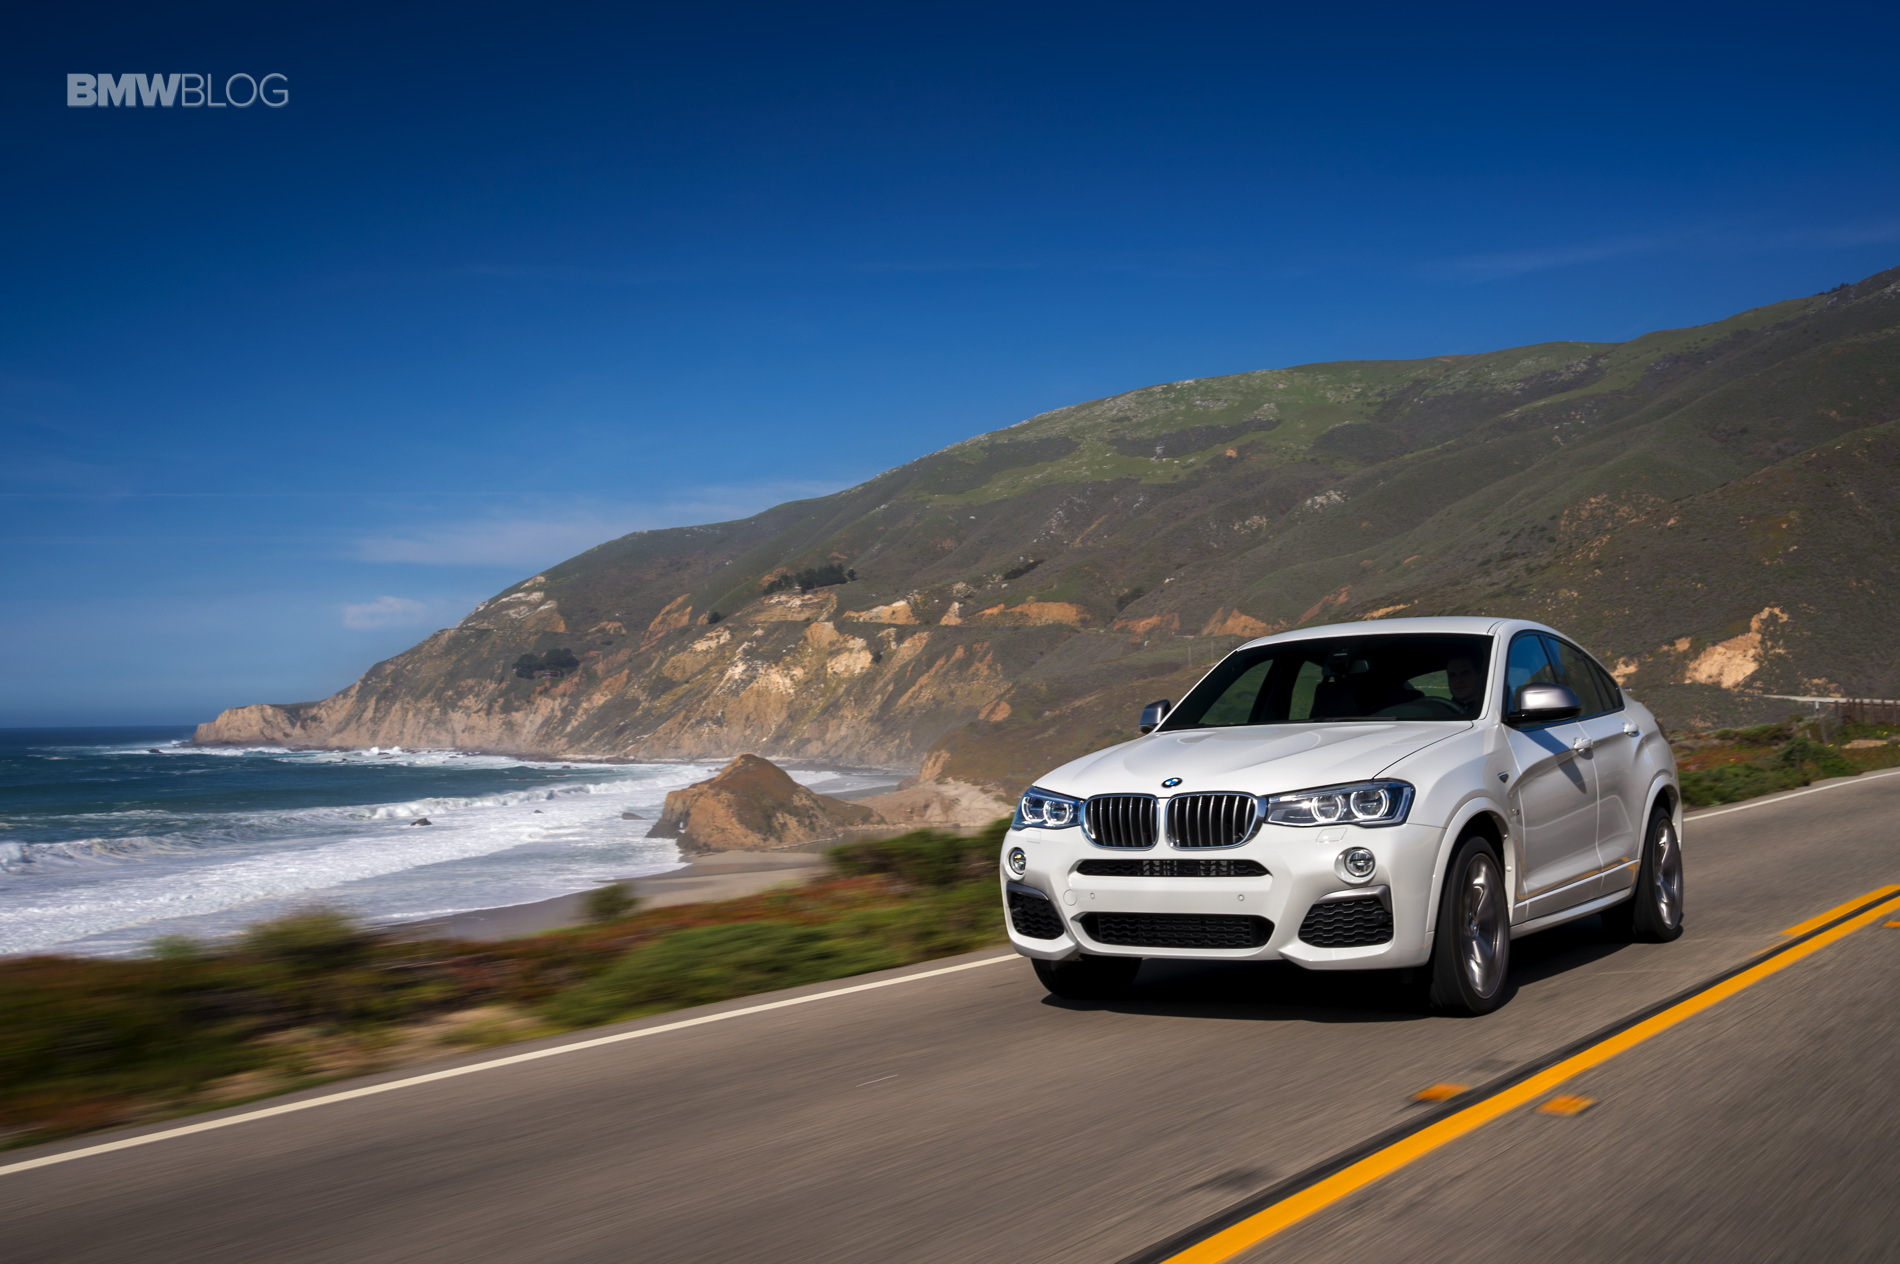 2016 BMW X4 M40i test drive review 29